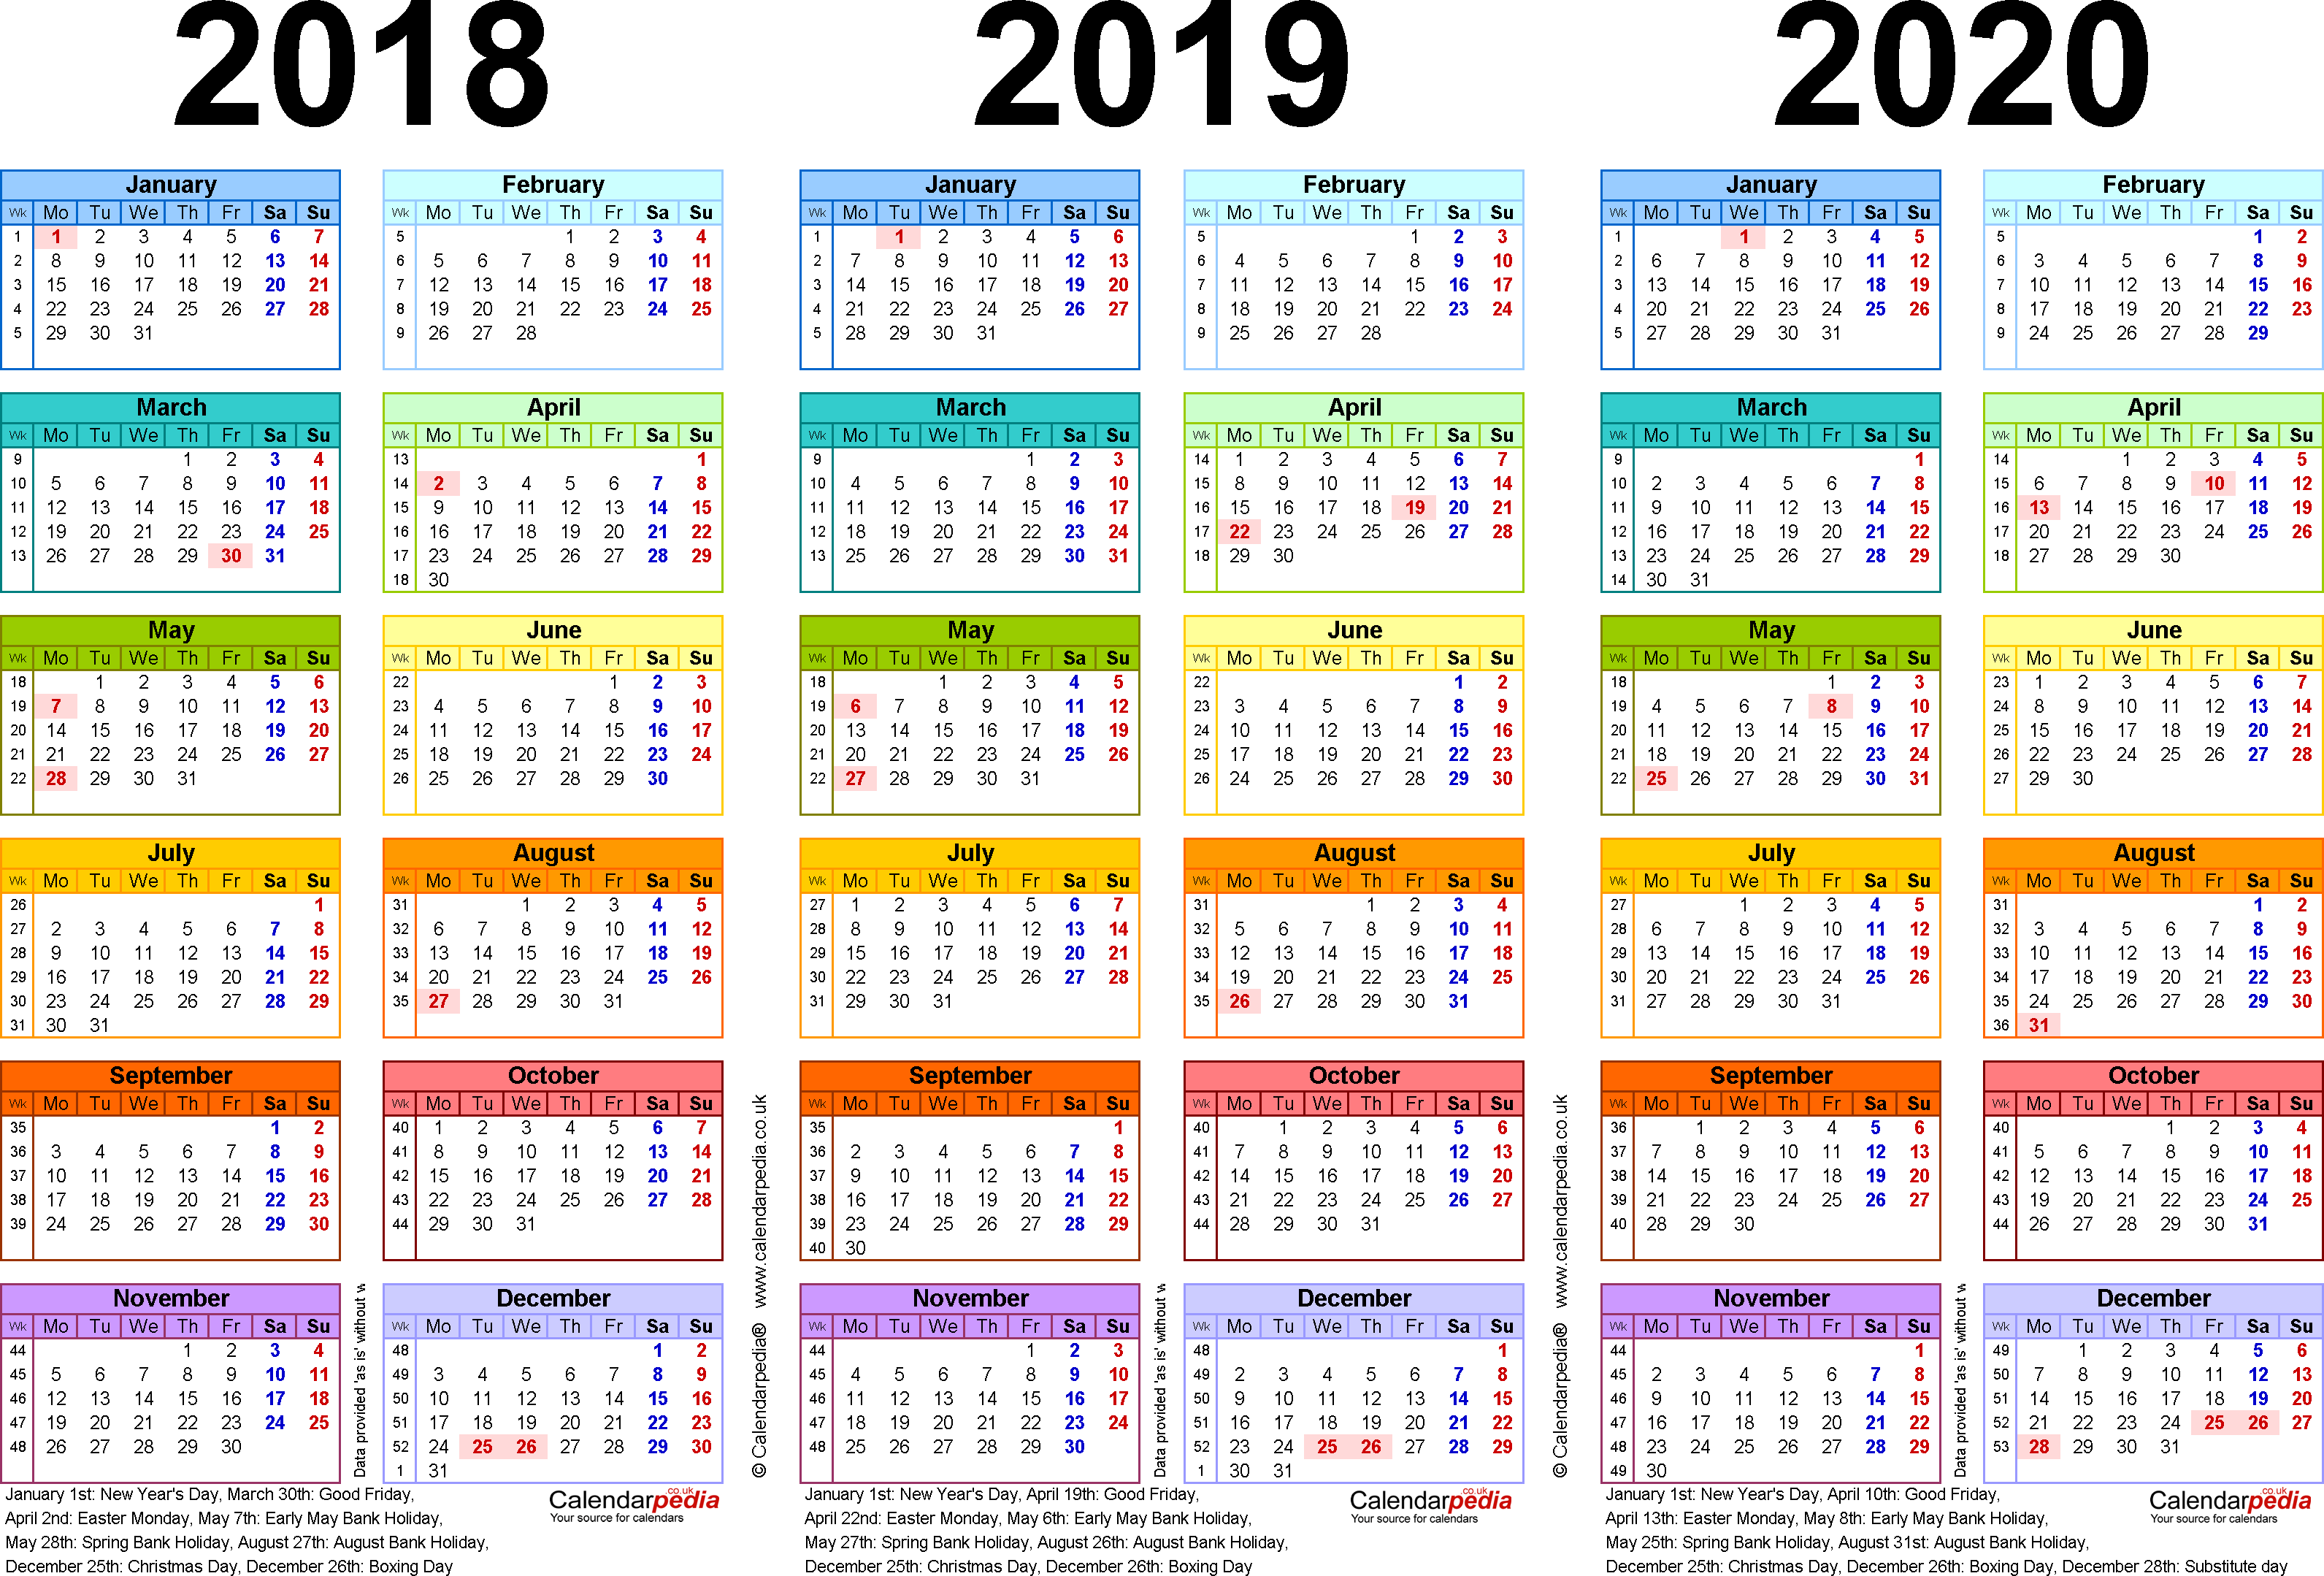 Template 1: PDF template for three year calendar 2018-2020 in colour (landscape orientation, 1 page, A4)